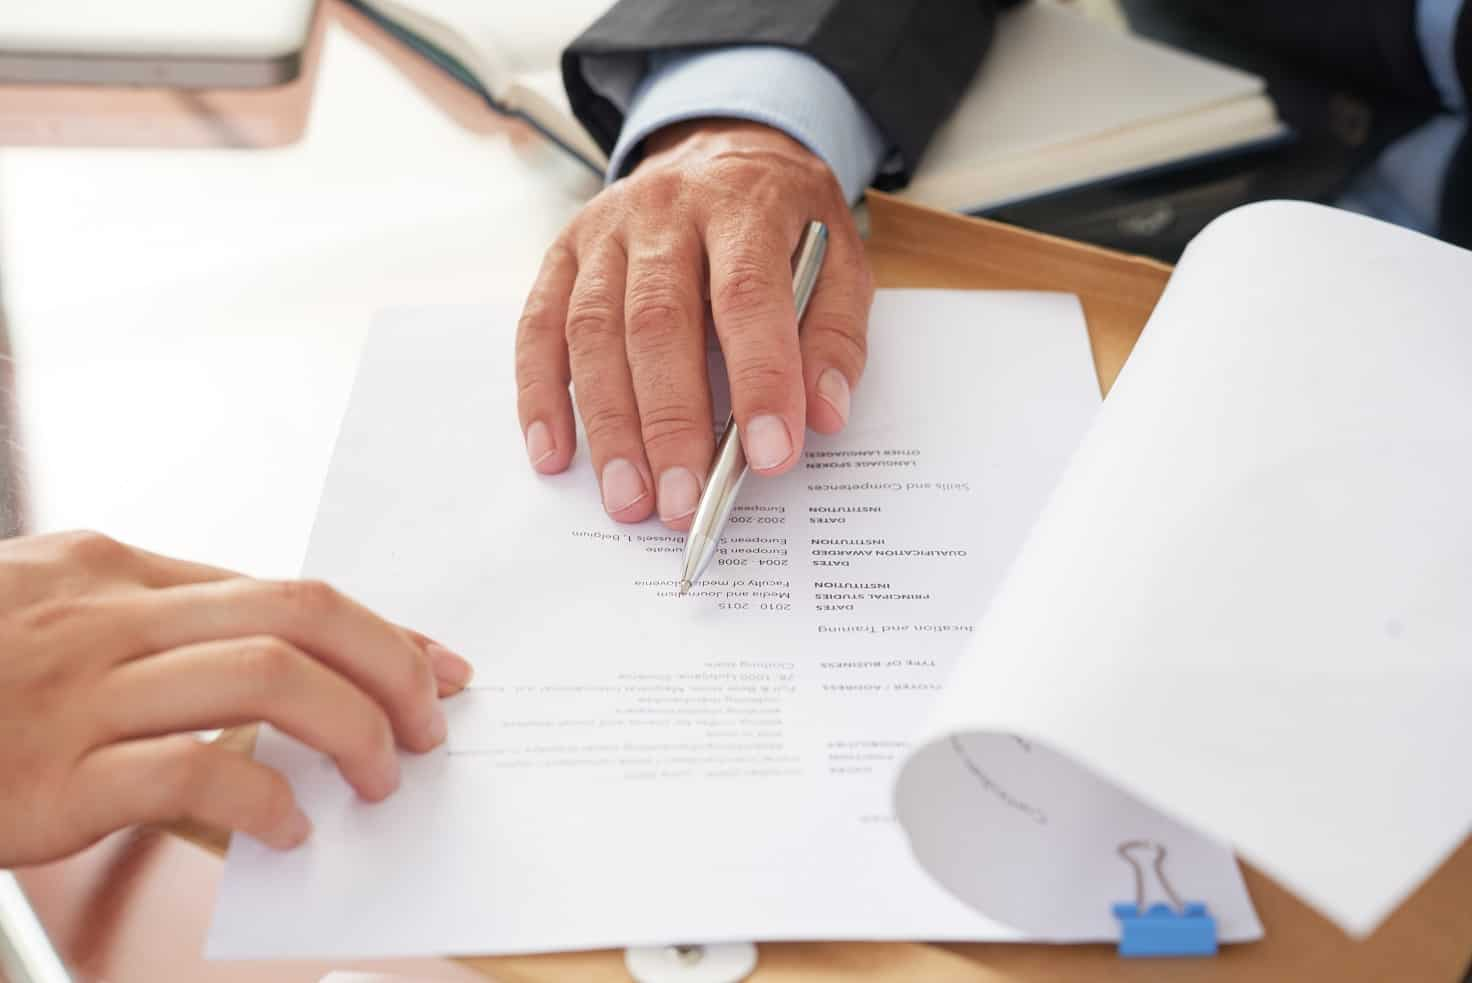 7 Critical Skills You Must Have In Your Résumé or CV (If you must land that job).